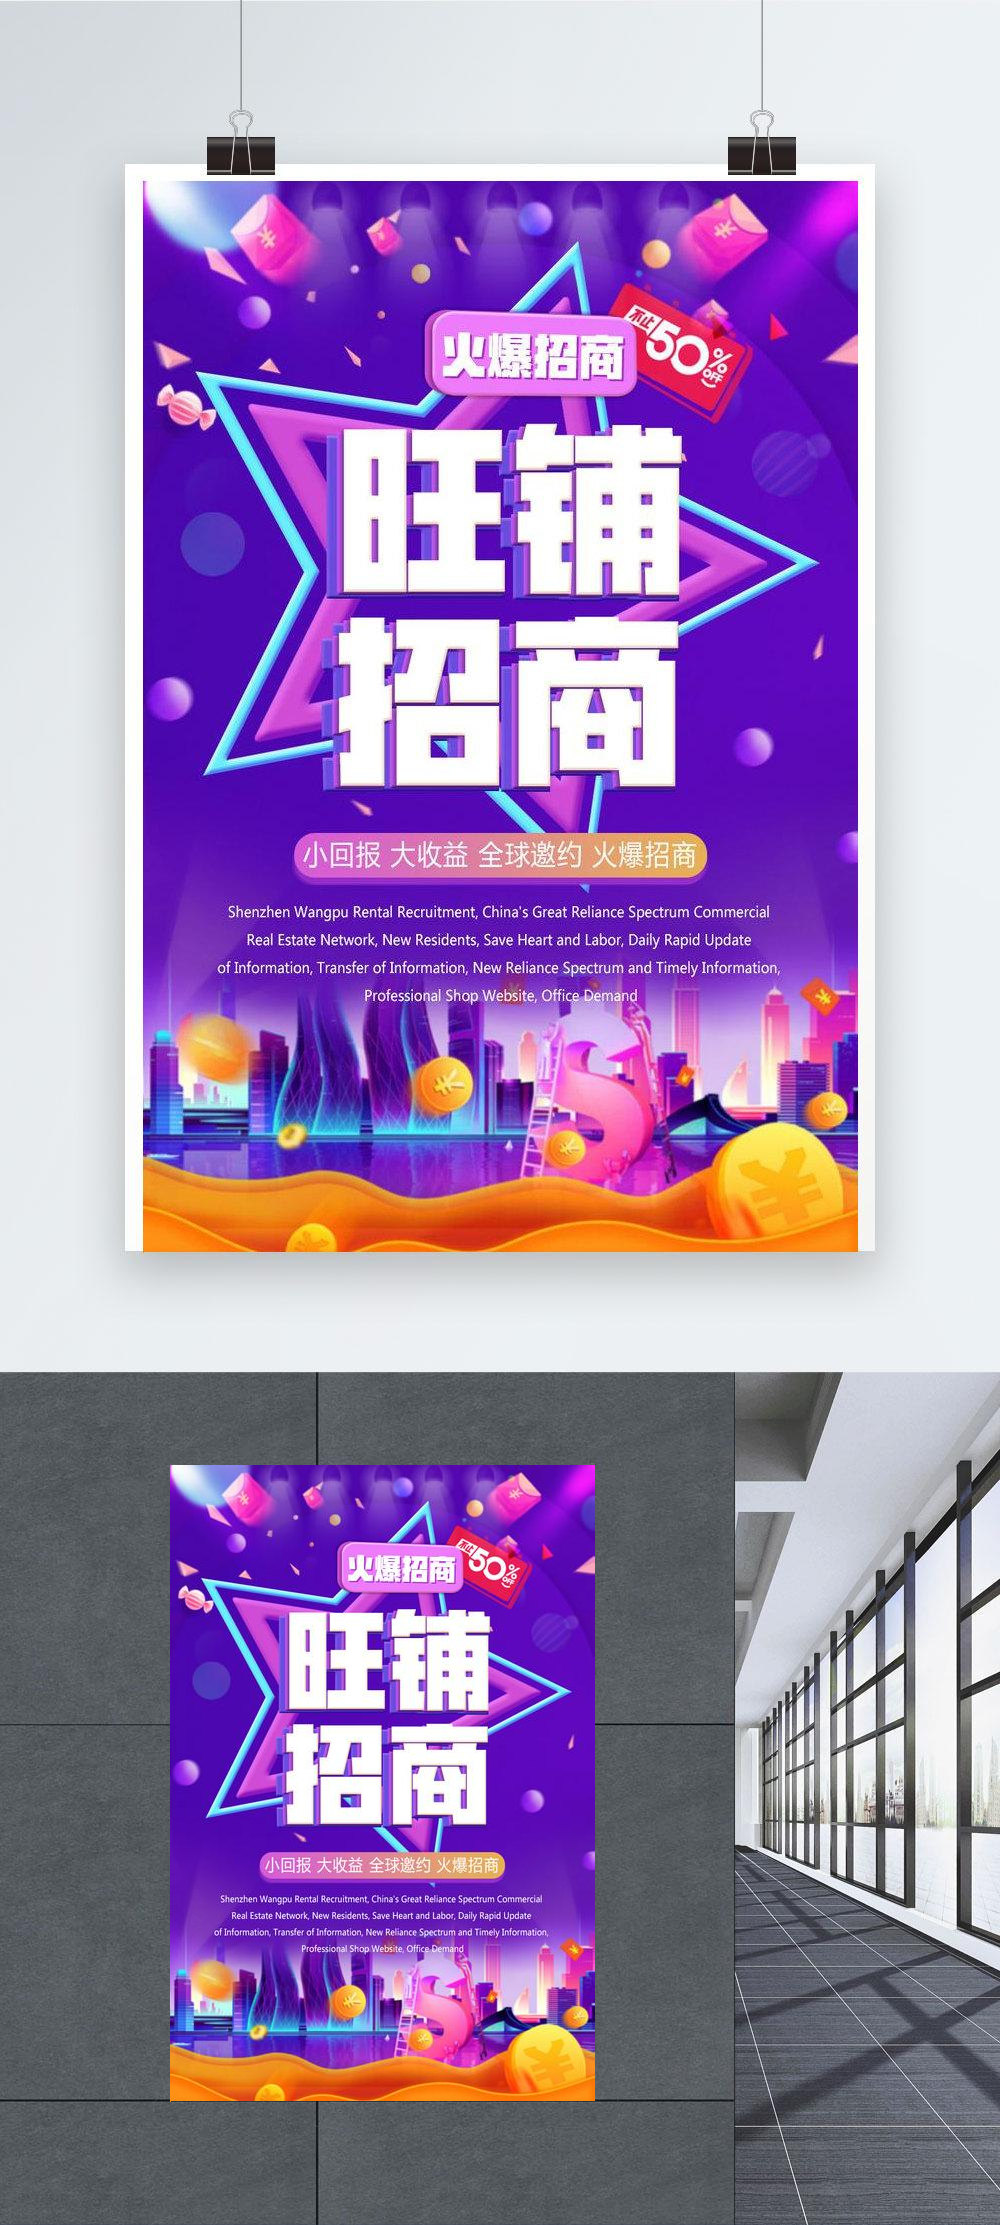 Creative real estate investment poster template image_picture free